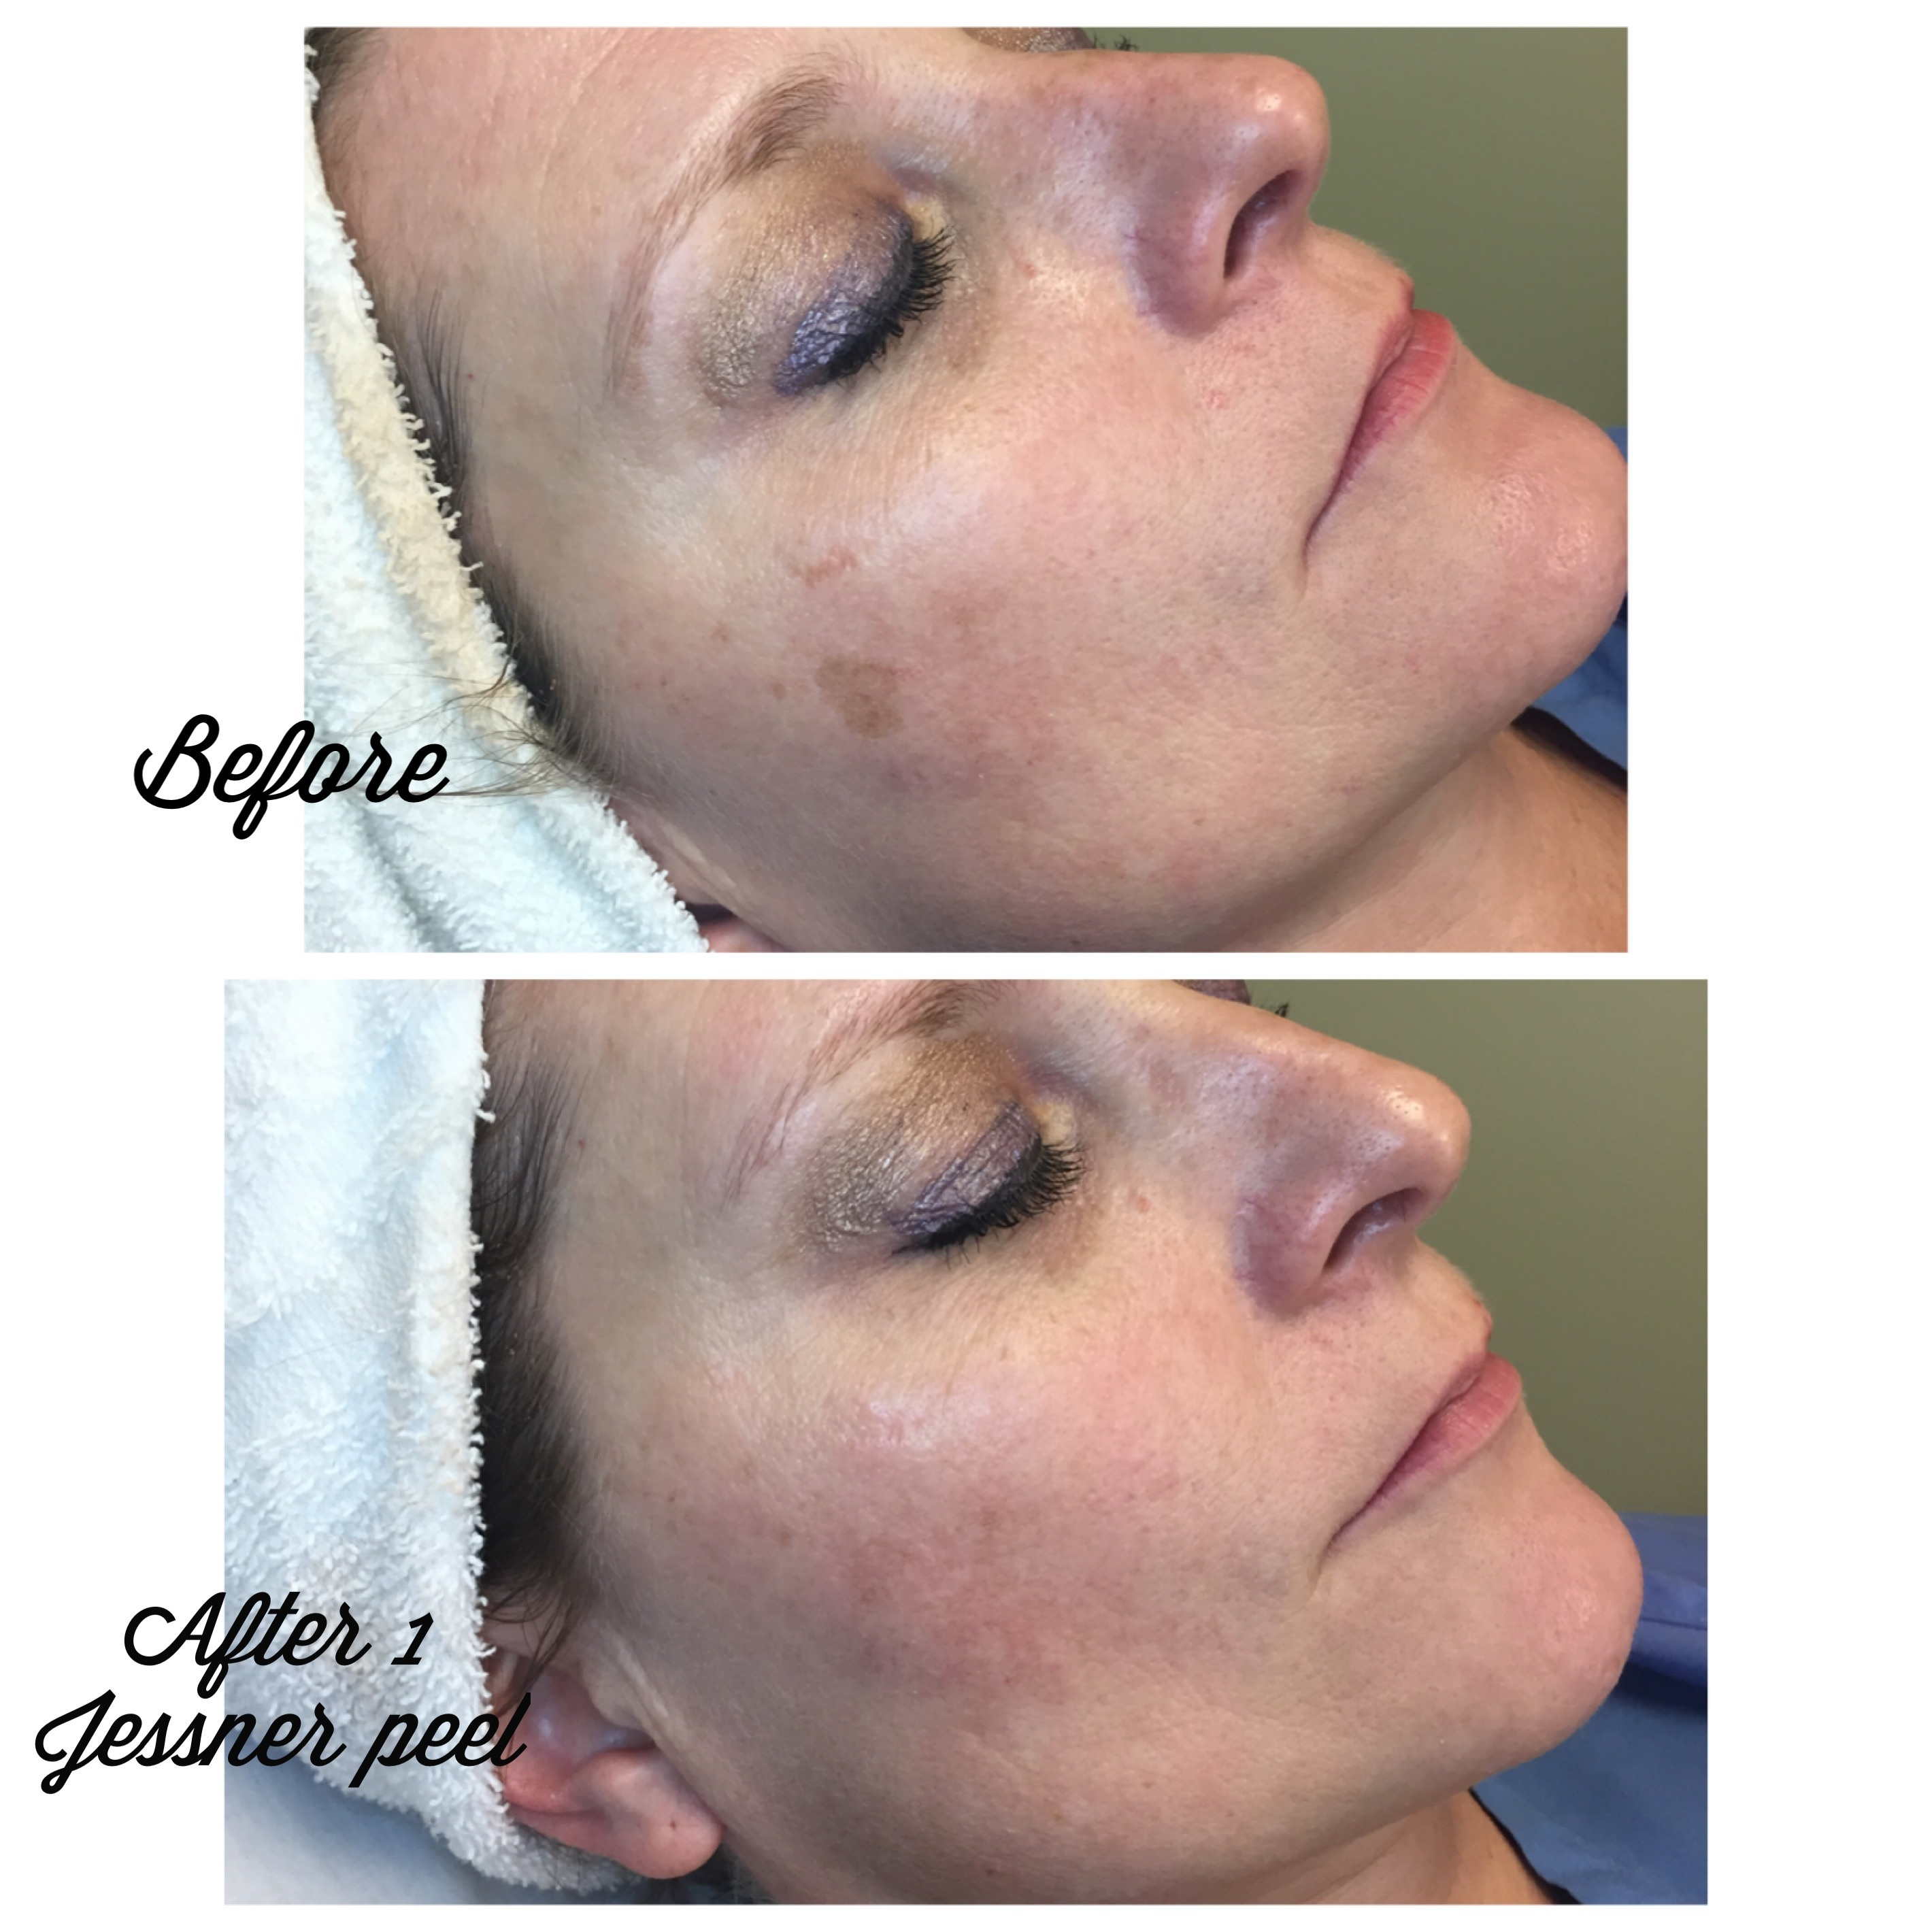 jessner peel, before and after, plastic surgery affiliates, nashville, tn